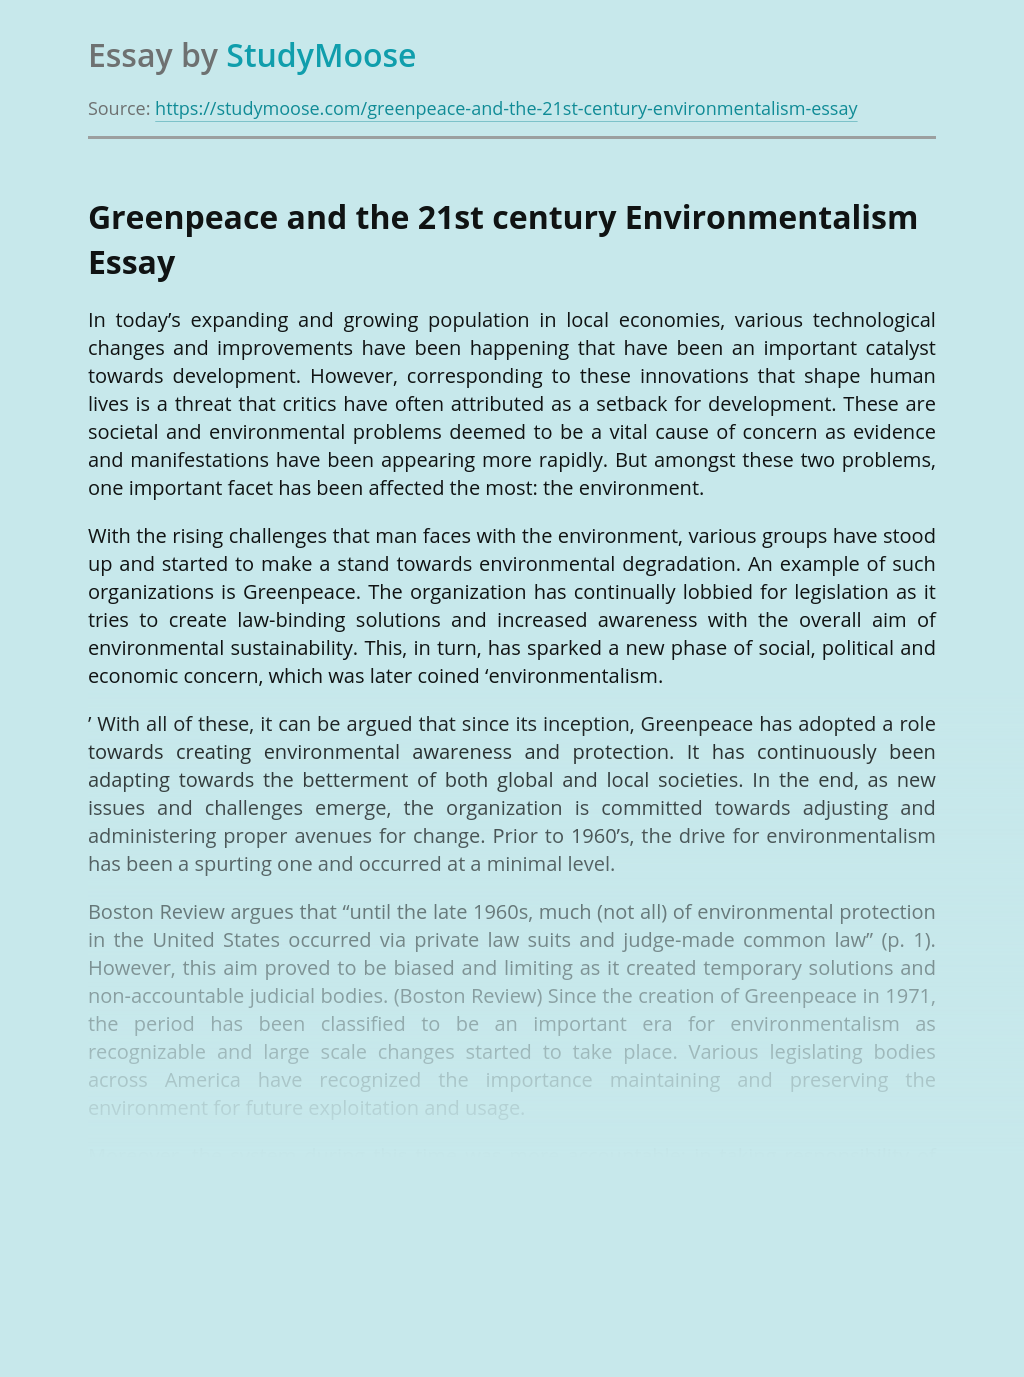 Greenpeace and the 21st century Environmentalism